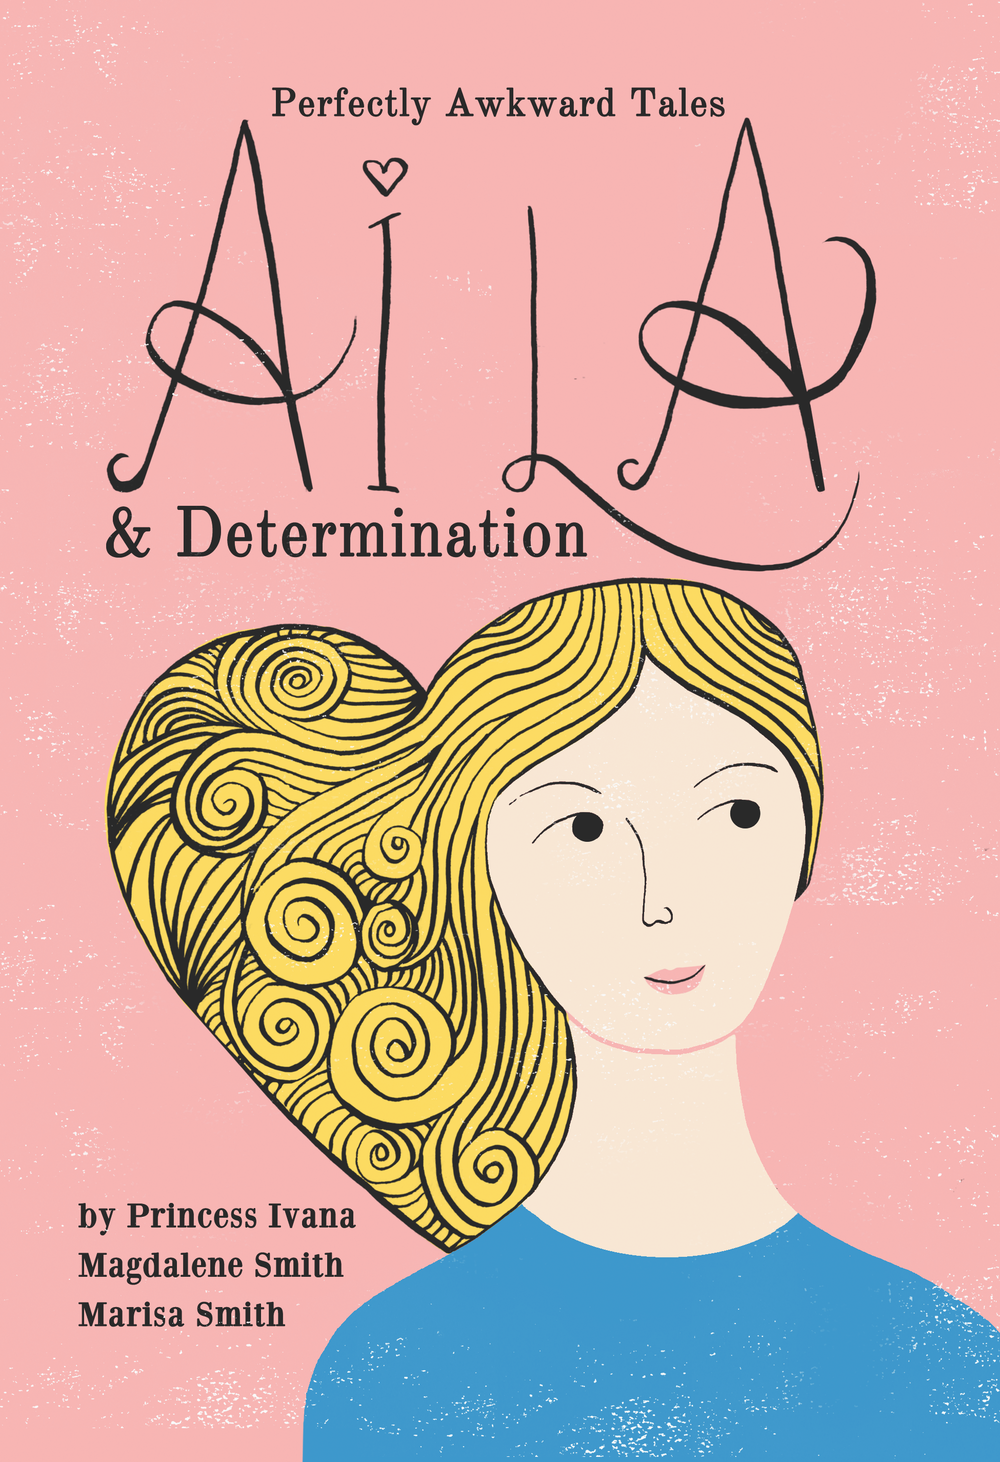 Perfectly Awkward Tales - Aila & Determination